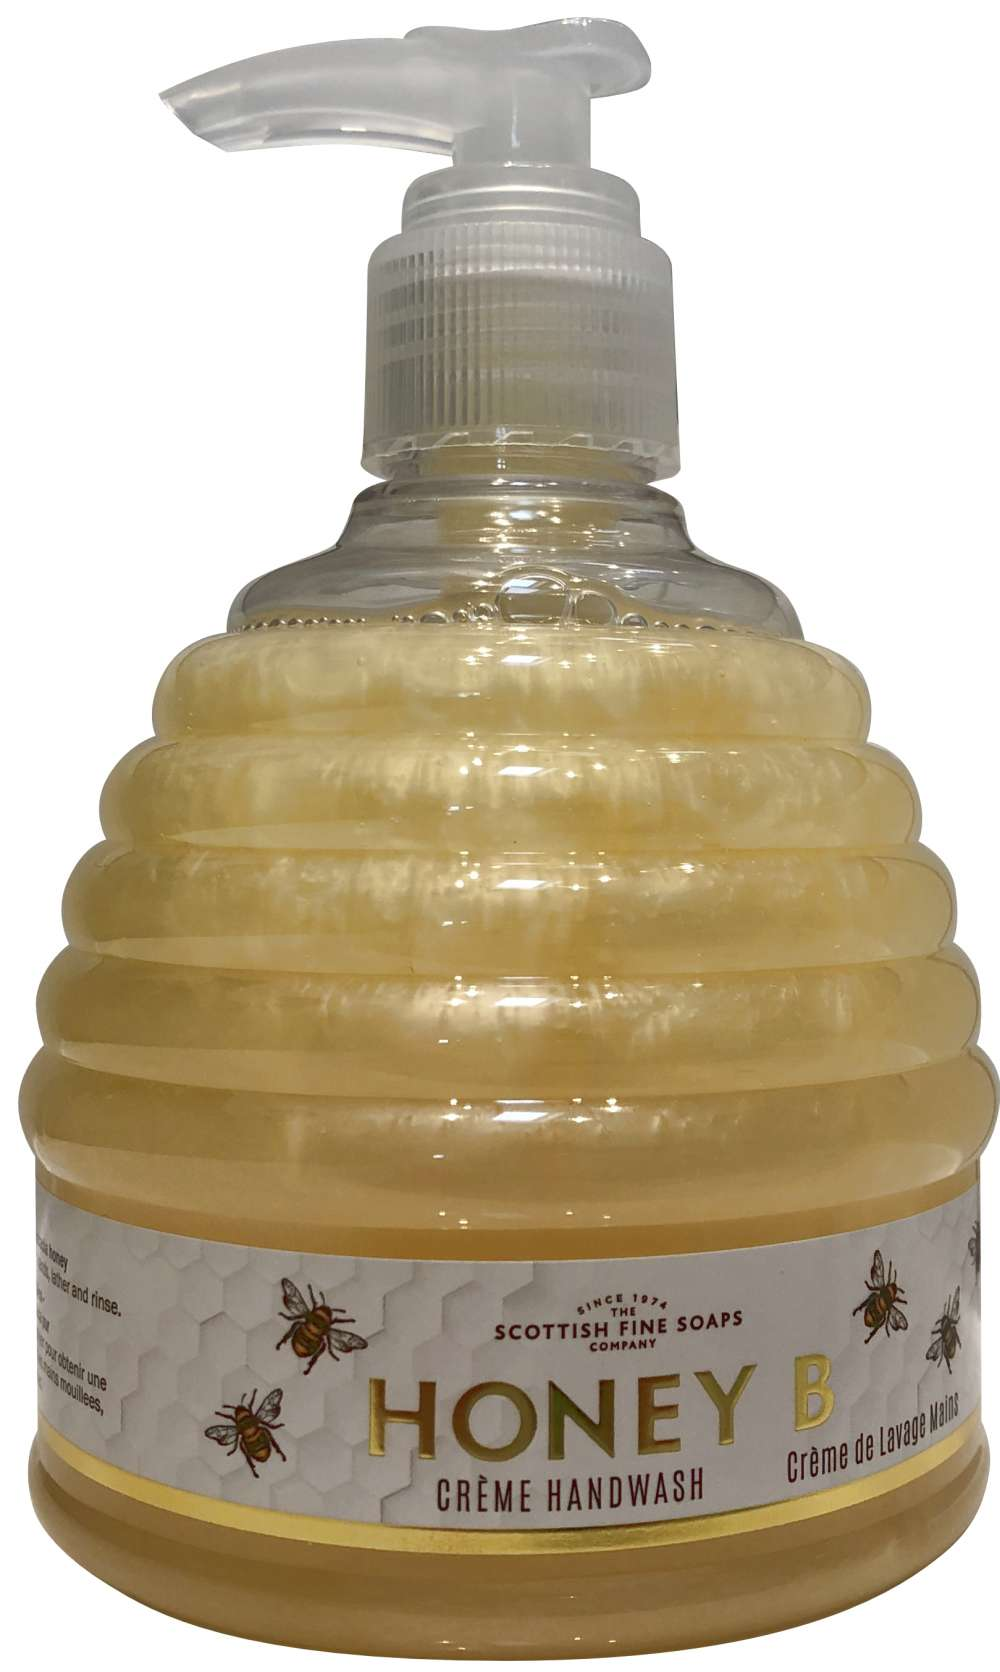 Honey B Creme Handwash